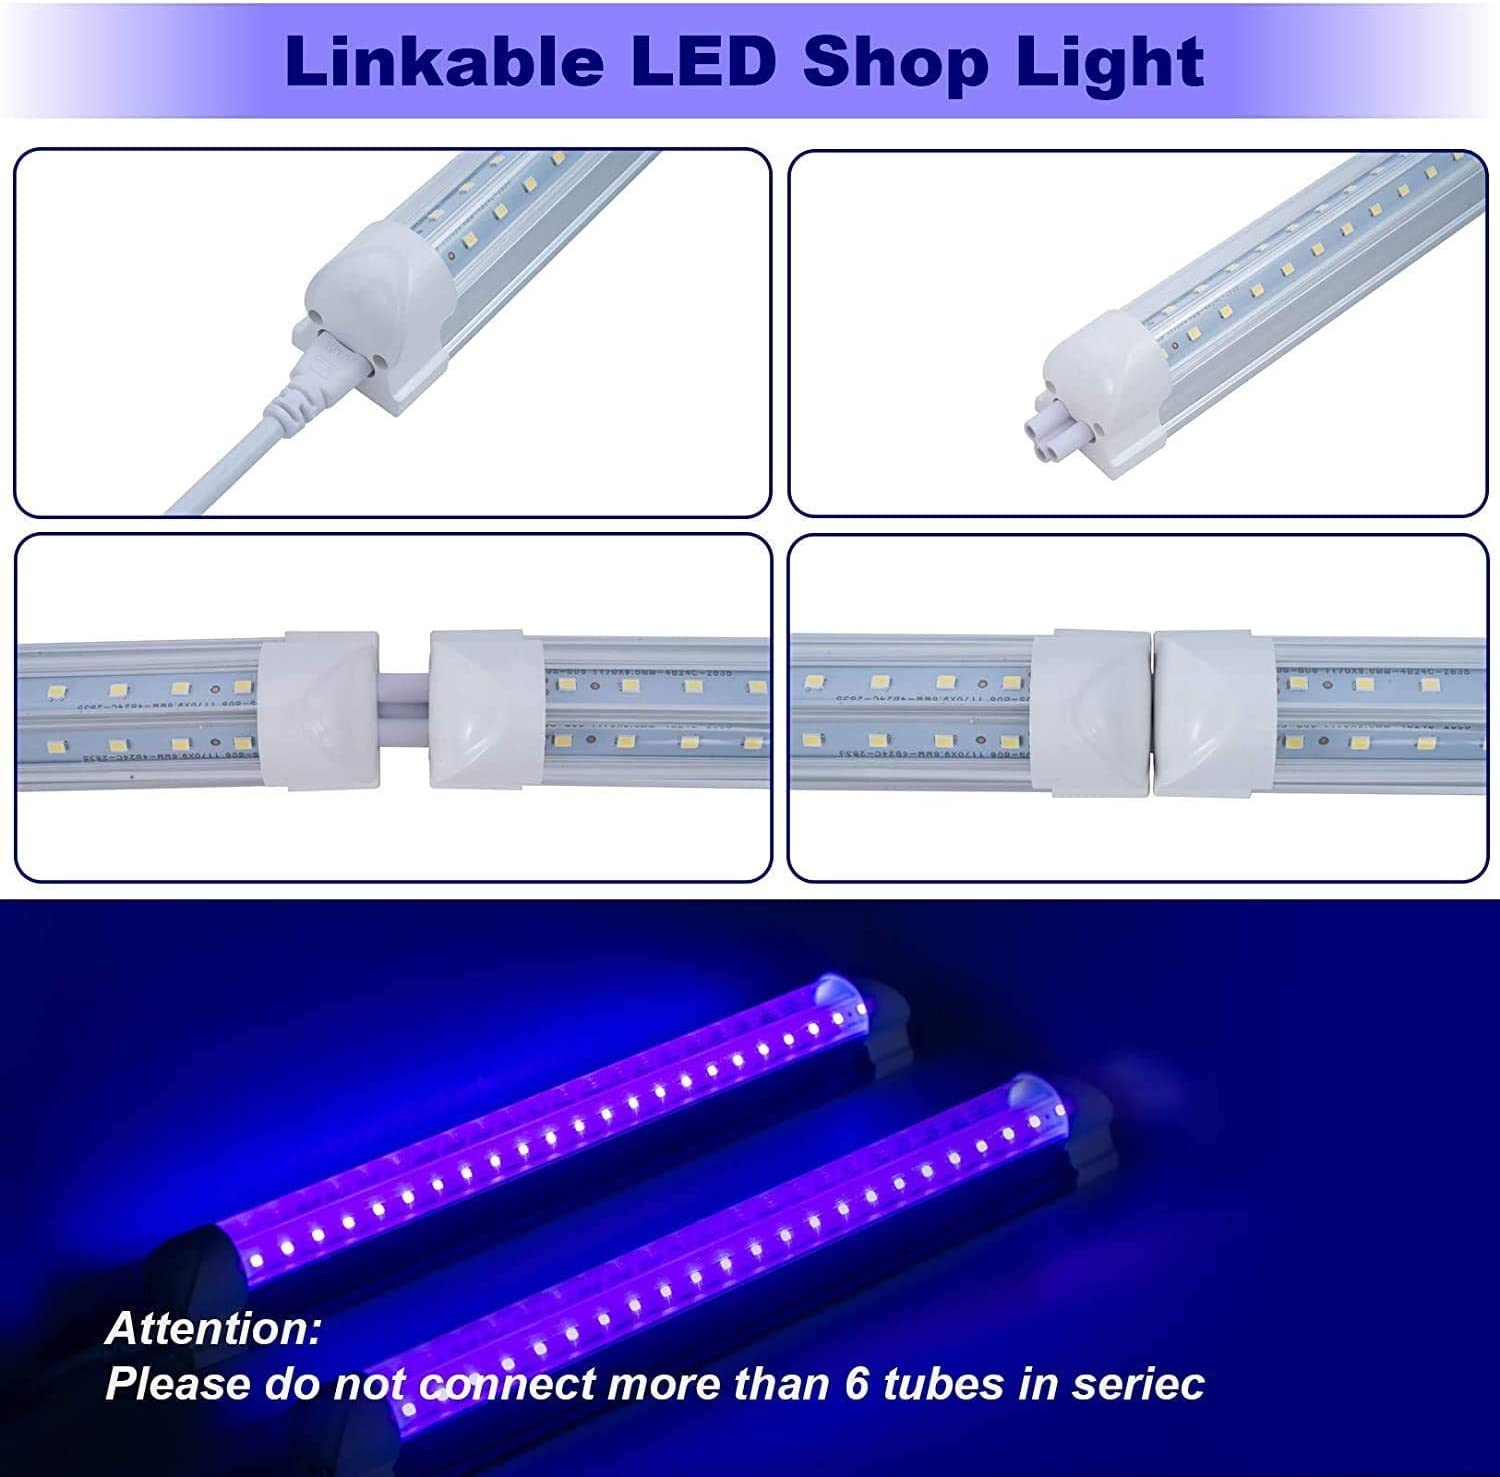 4 Pack LED/ UV/ Black/ Light/ 1FT/ 10W/ T8/ Integrated/ V/ Shaped/ Tube/ Lamp/ Clear/ Cover,for/ Blacklight Poster,/ Party,/ Club,/ Bar,Festival,/ Fun Atmosphere Led/ Stage/ /&n